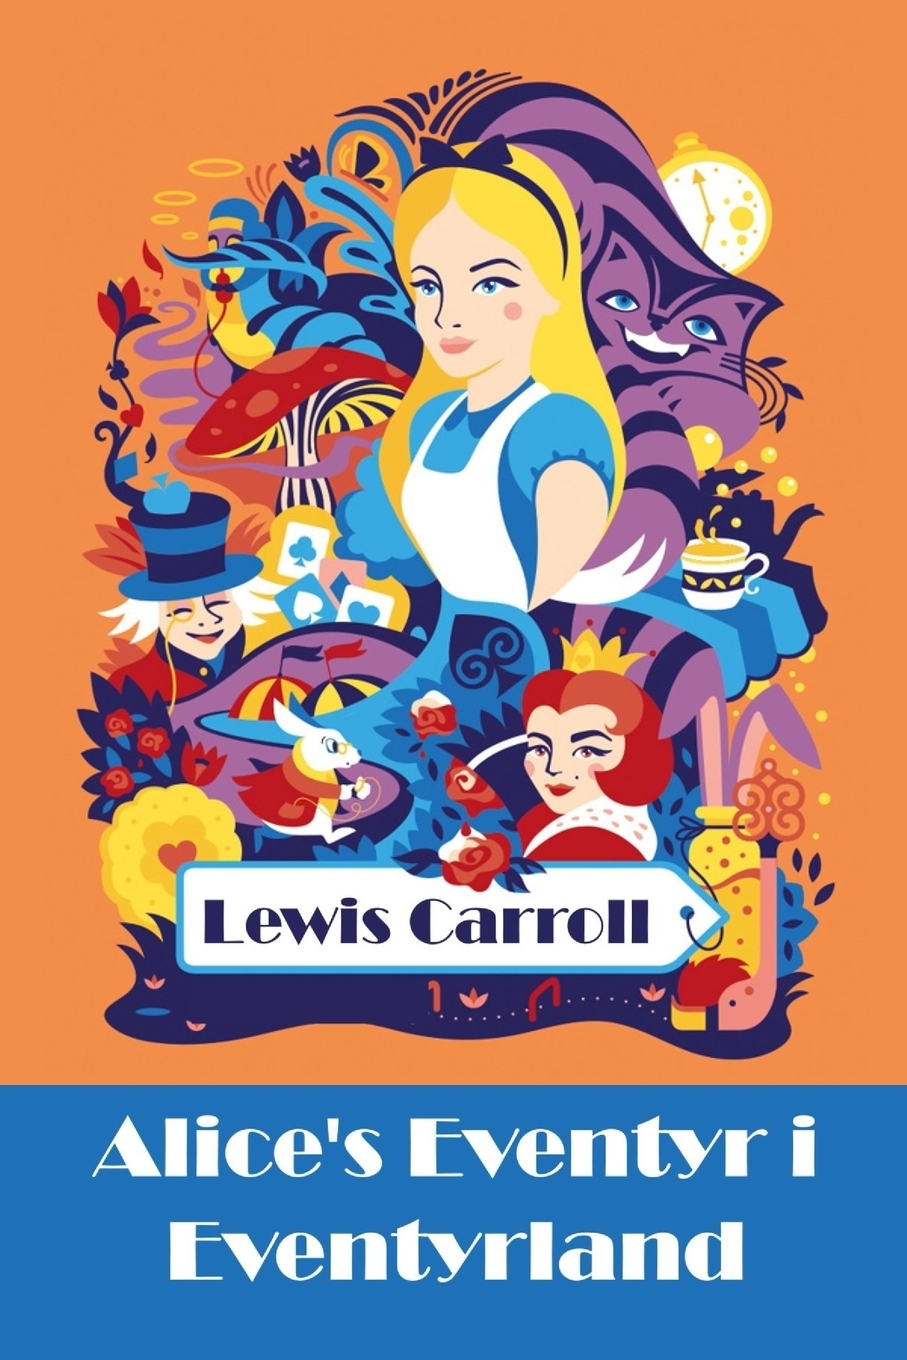 Lewis Carroll Alice's Eventyr i Eventyrland. Alice's Adventures in Wonderland, Danish edition complete illustrated lewis carroll